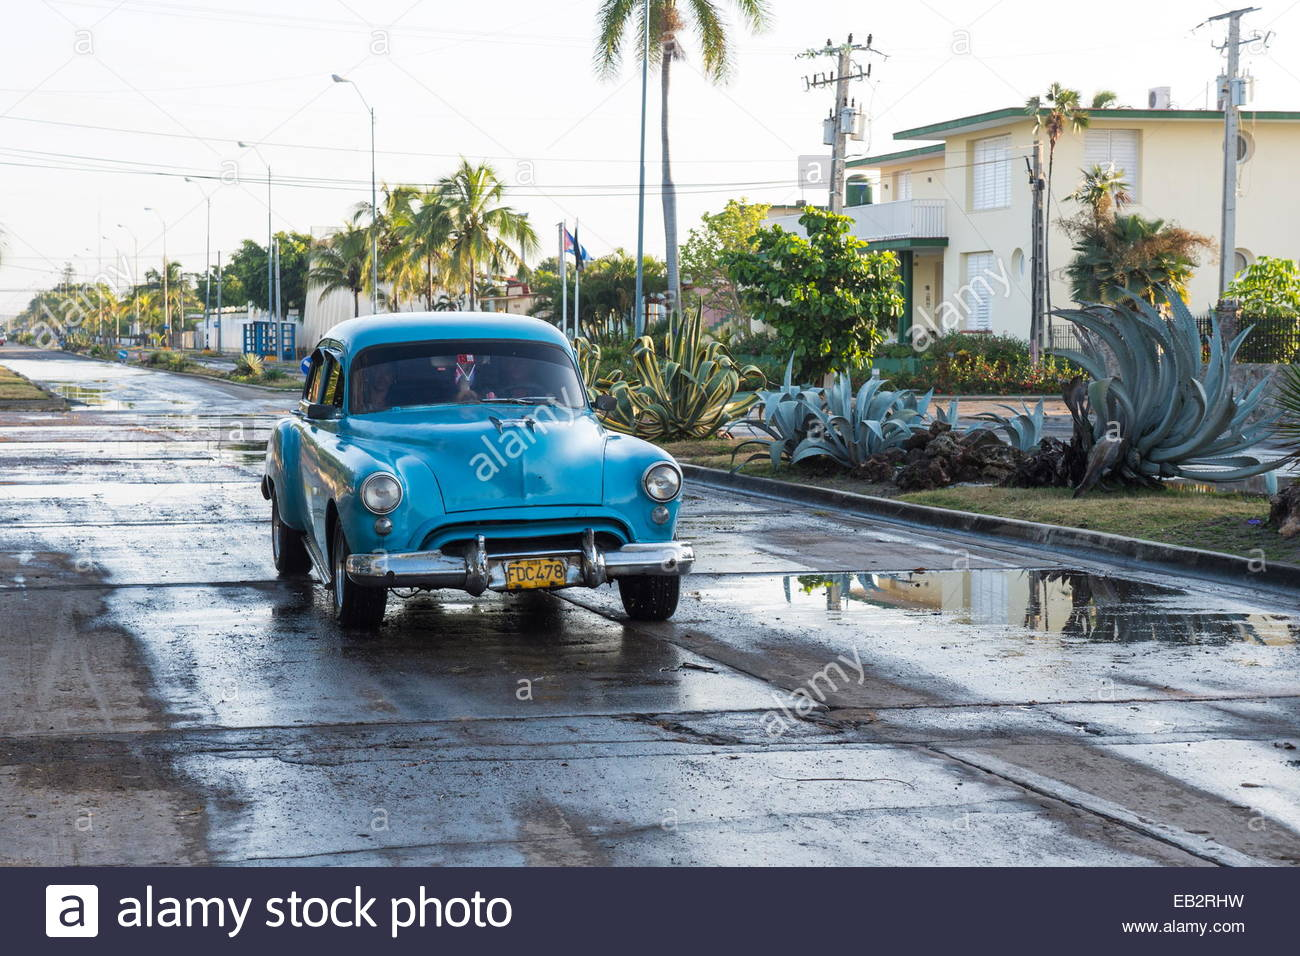 Early morning after a rain storm old cars drive through wet streets in Cienfuegos, Cuba. - Stock Image